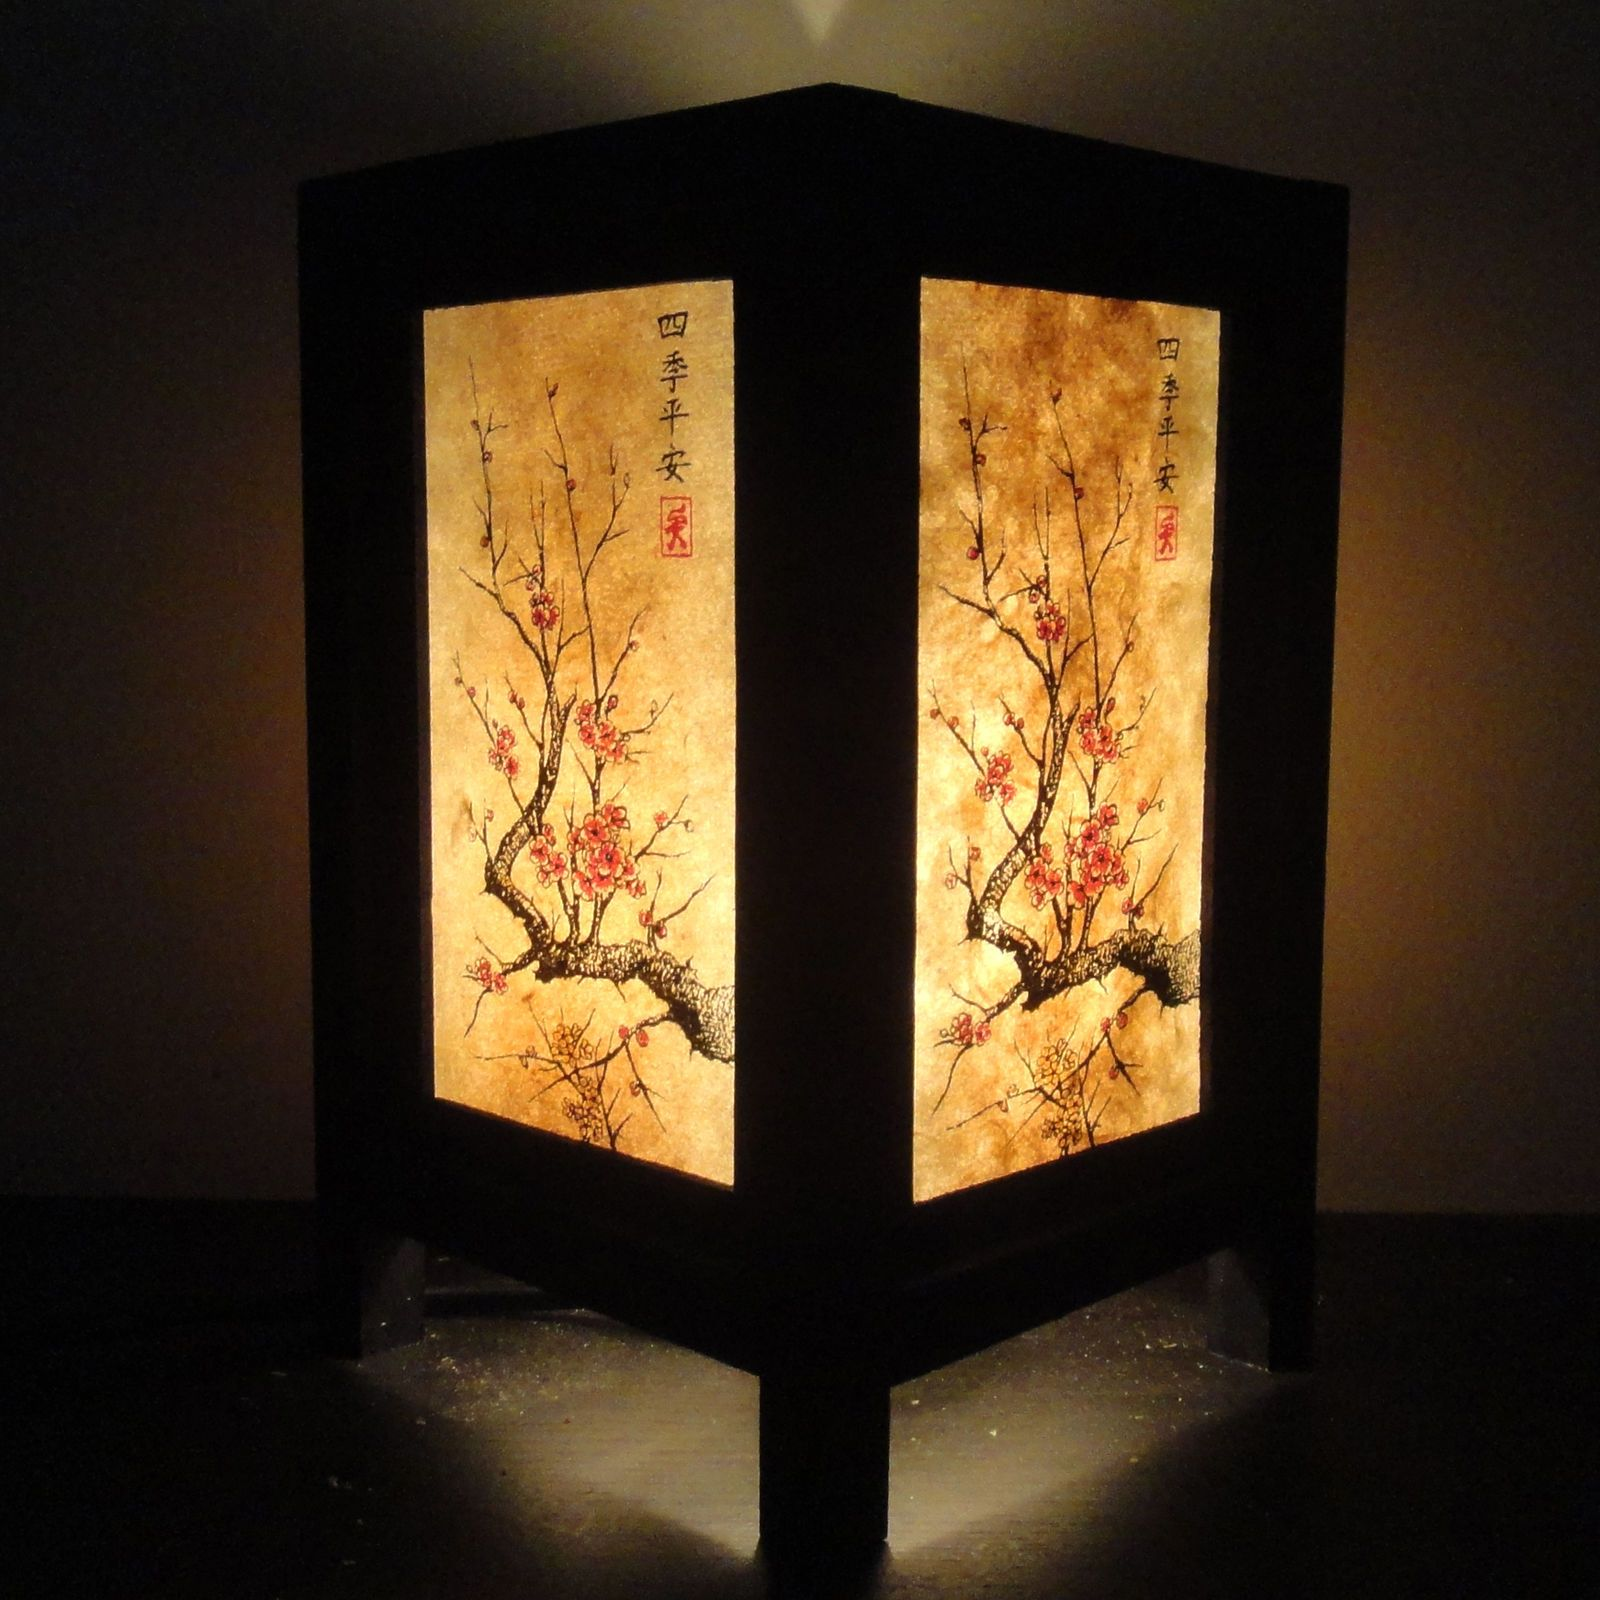 Asian Oriental Japanese Cherry Blossom Tree Art Bedside Desk Table Lamp Shades Bedside Table Lamps Wood Oriental Lamp Asian Home Decor